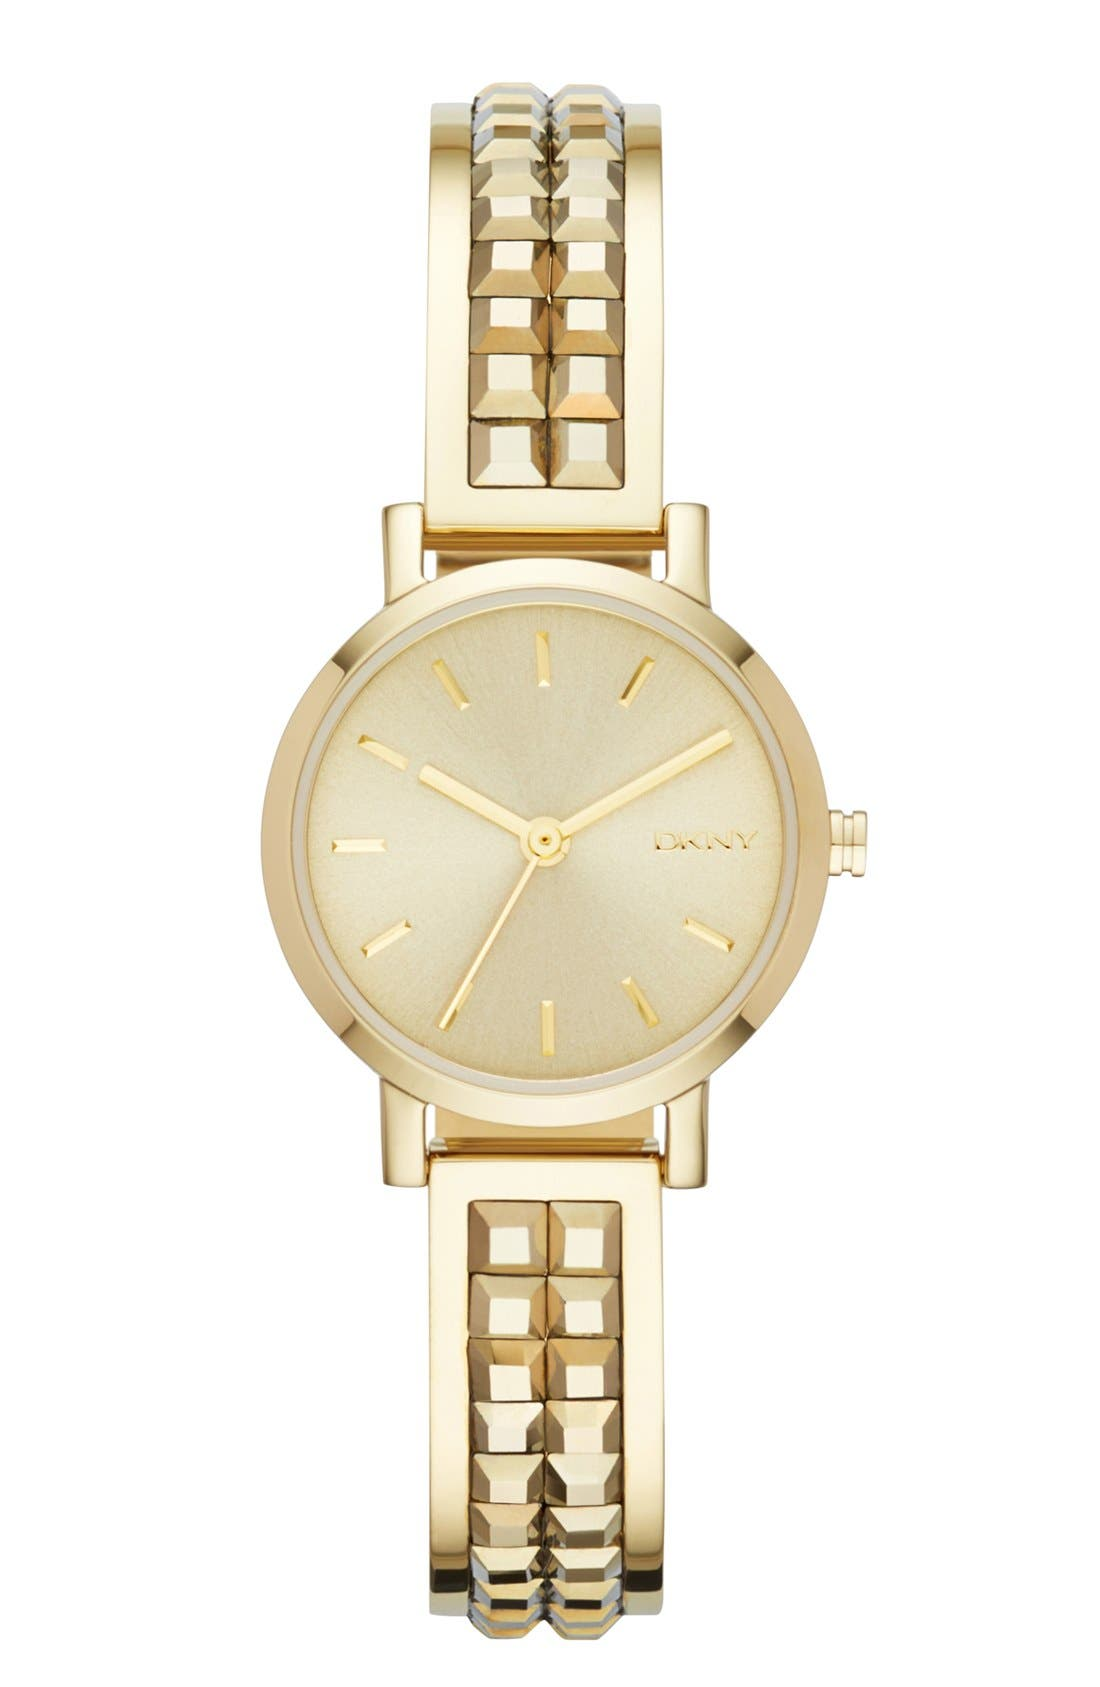 Main Image - DKNY 'Soho' Round Bangle Watch, 24mm